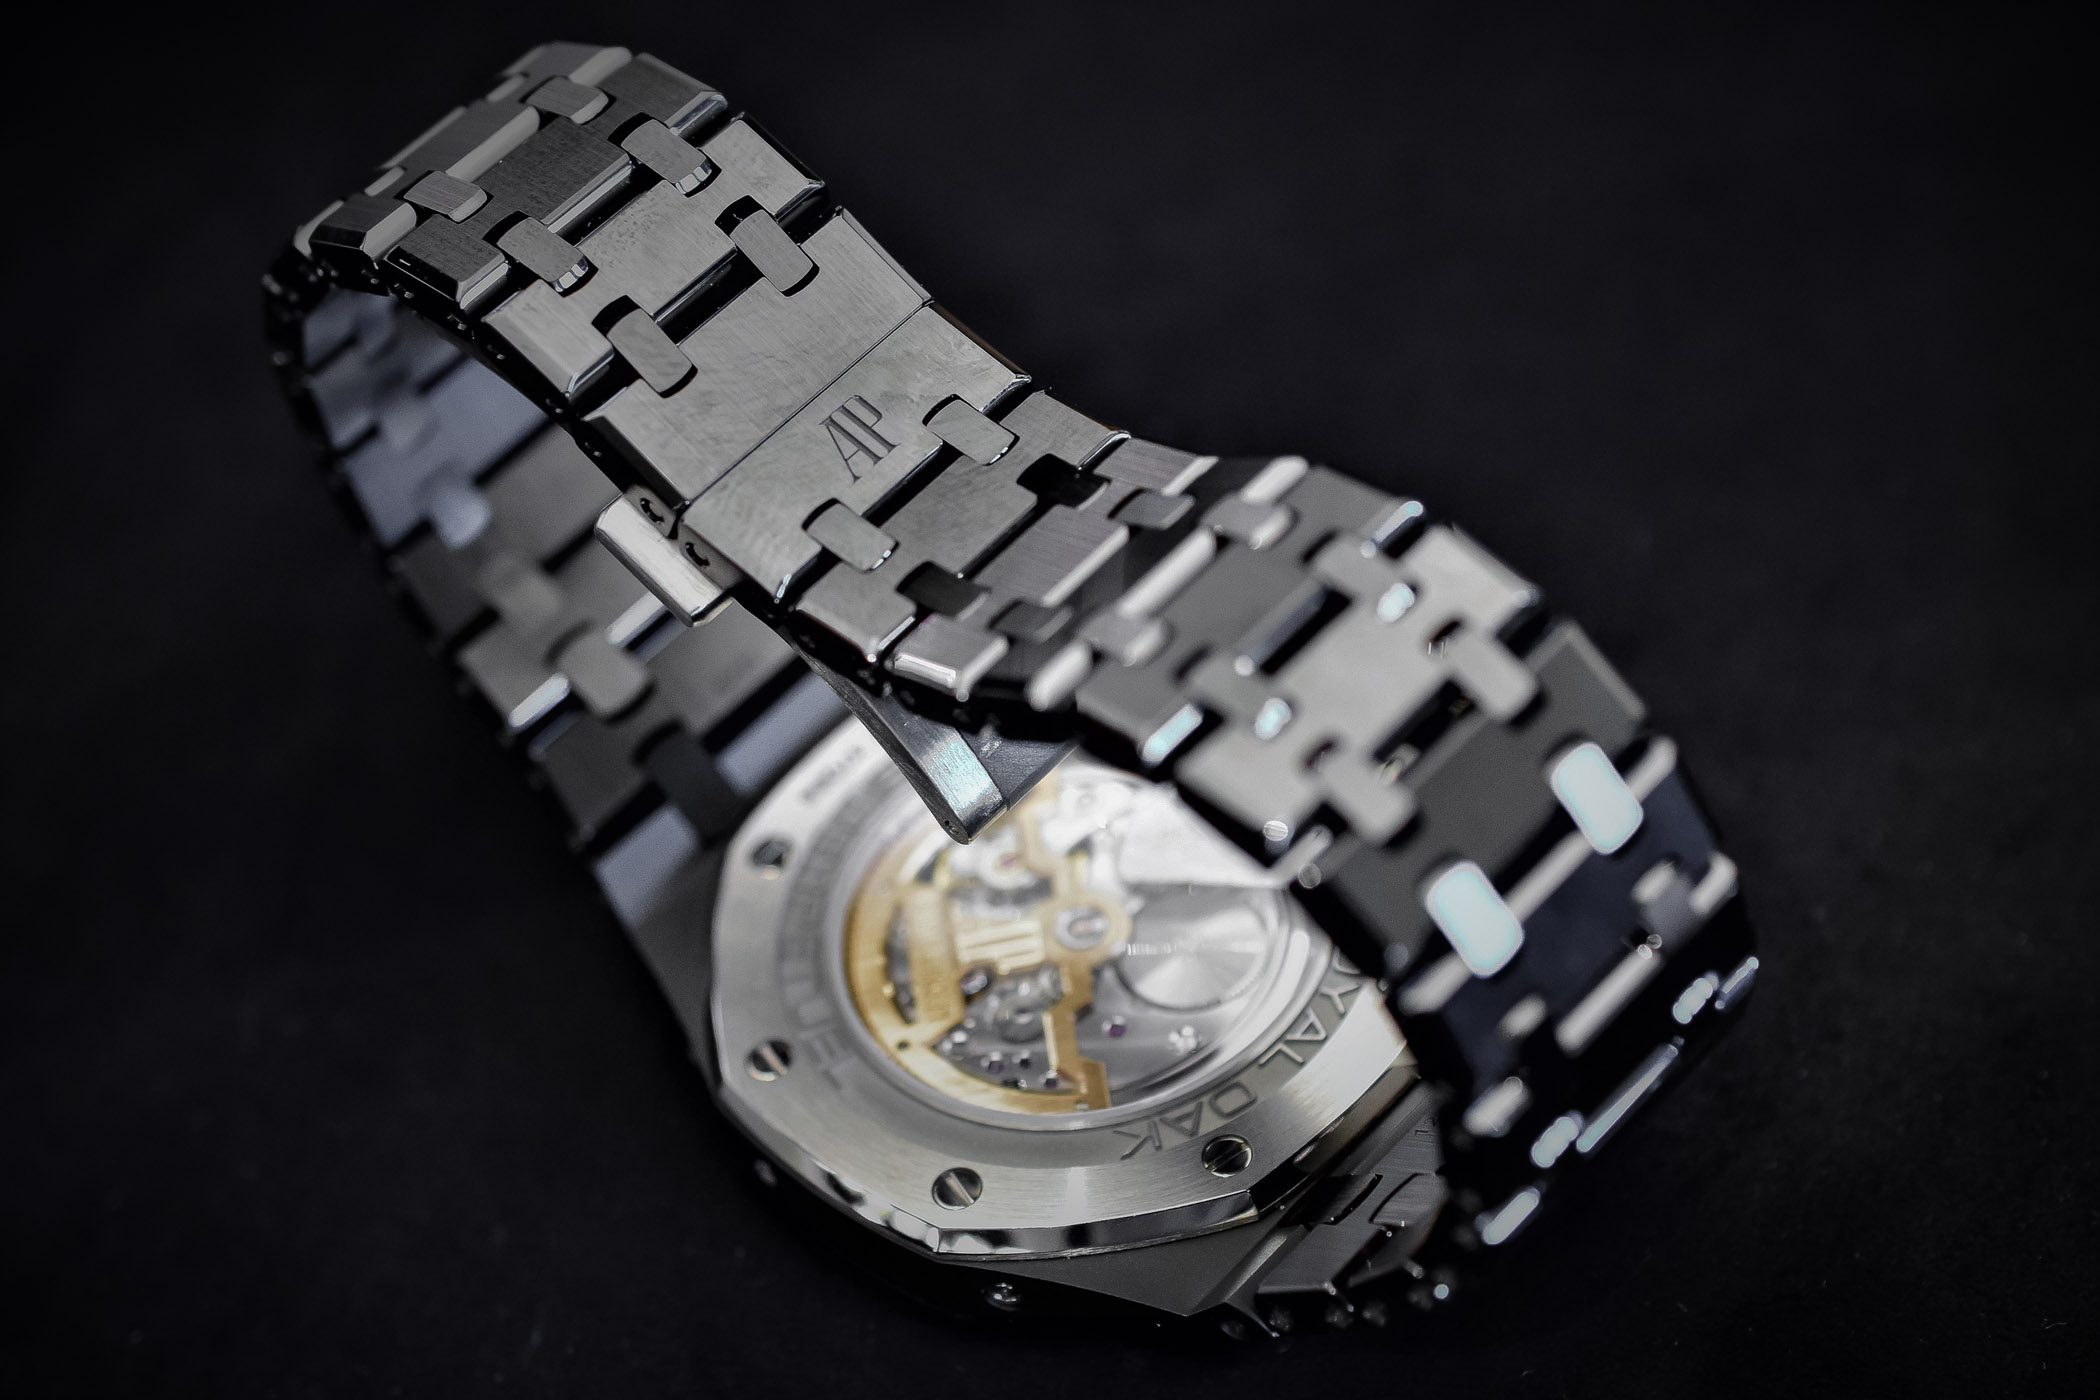 Audemars Piguet Royal Oak Perpetual Calendar Black Ceramic - 26579CE - Review